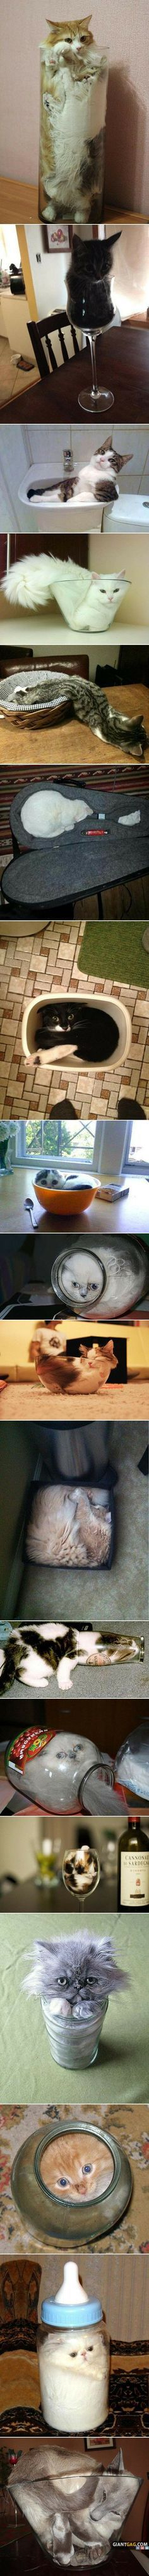 best tiere images on pinterest cute kitty funny animals and